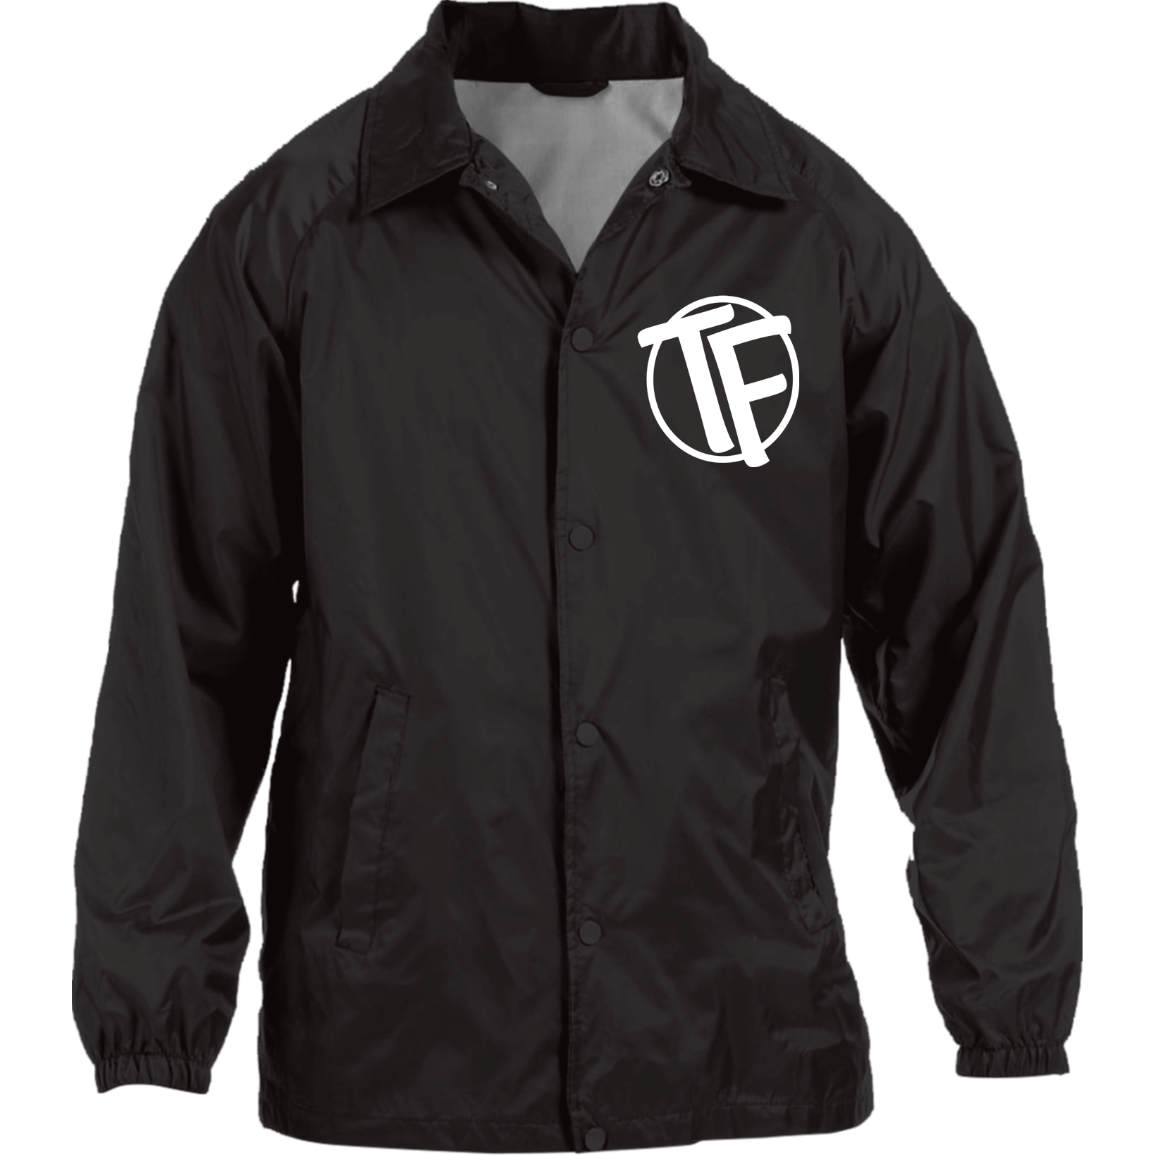 TYFE Men's Nylon Staff Jacket